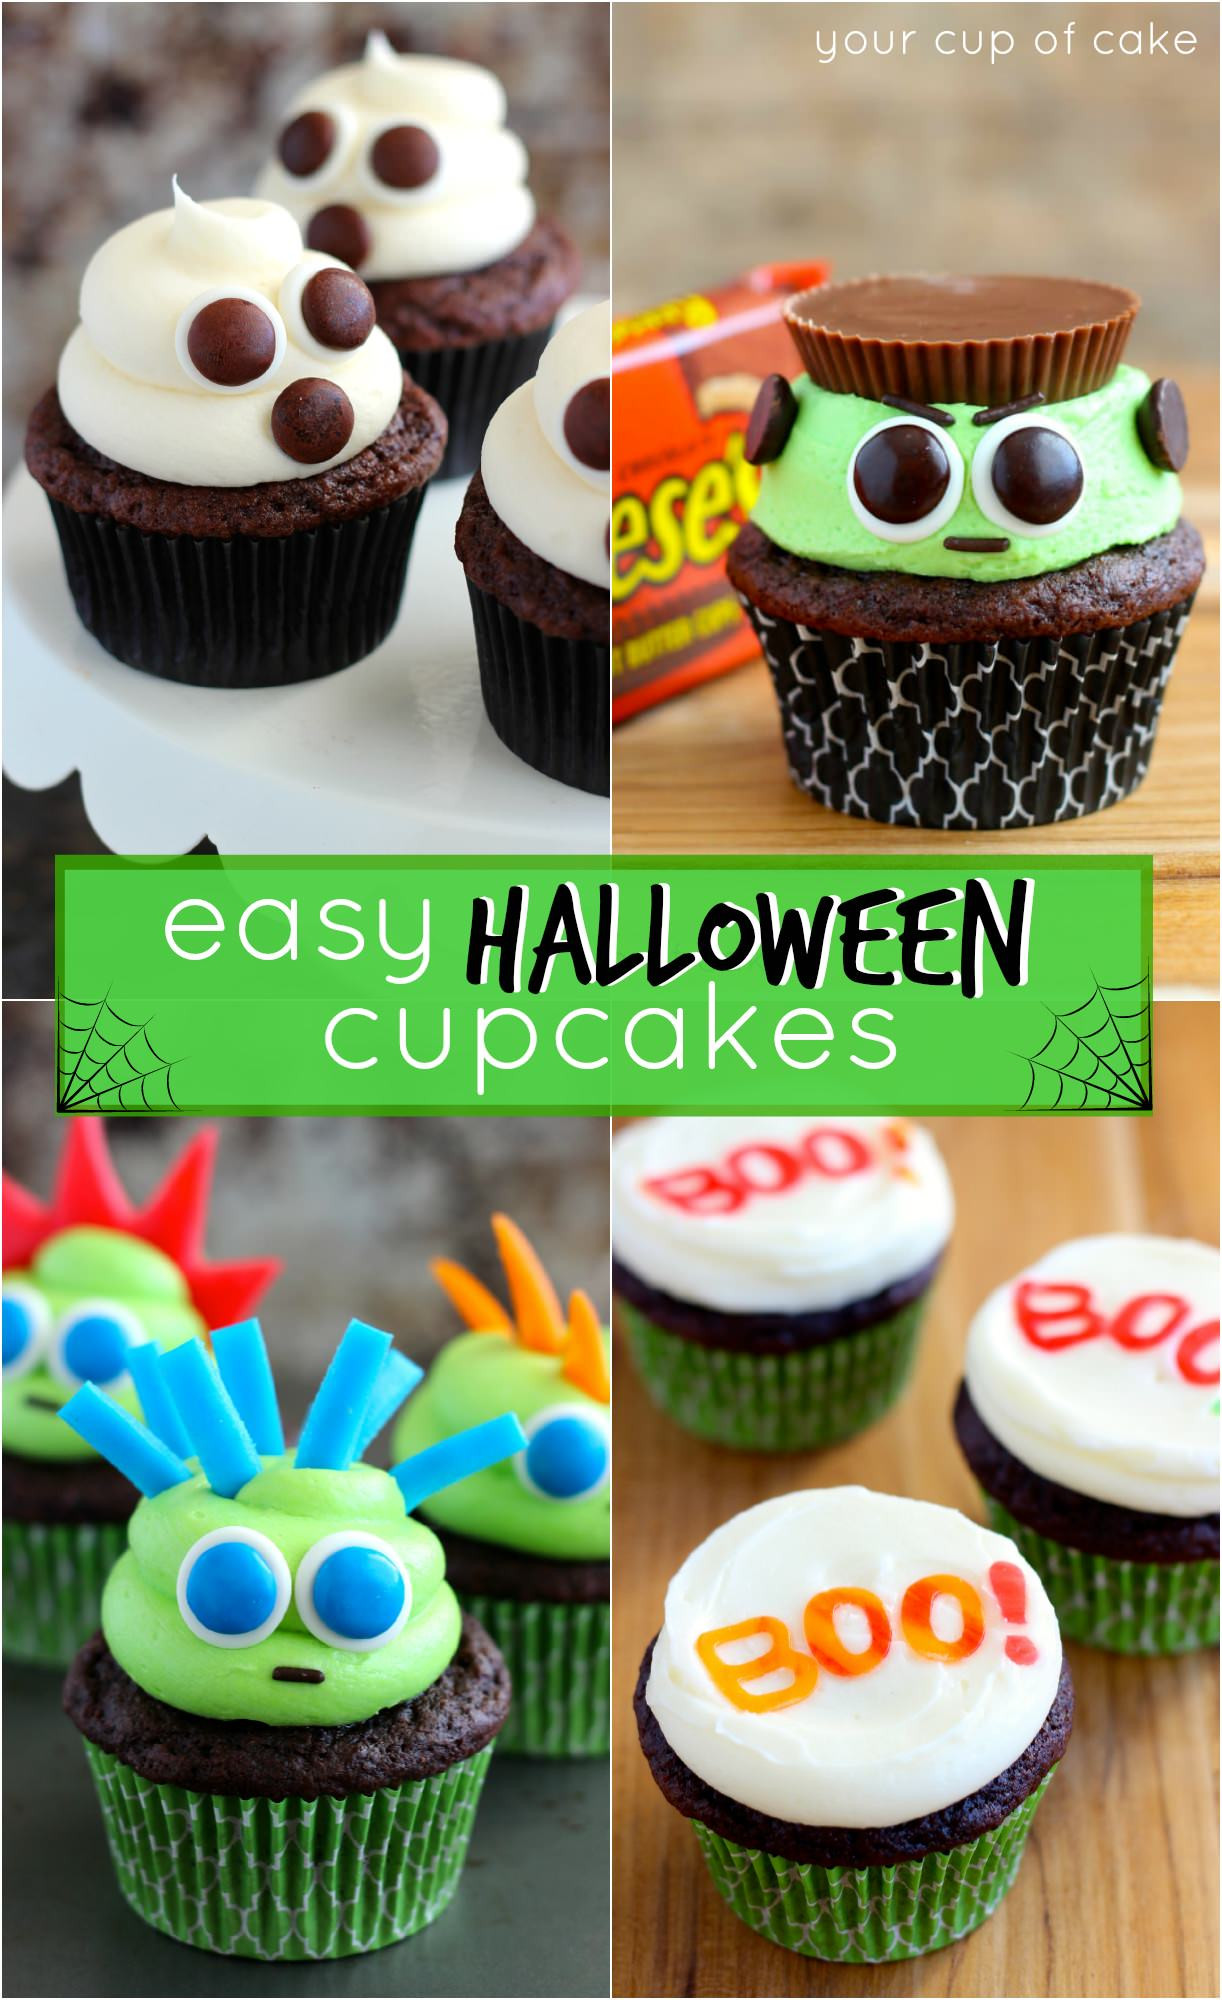 Halloween Cupcakes For Kids  Easy Halloween Cupcake Ideas Your Cup of Cake